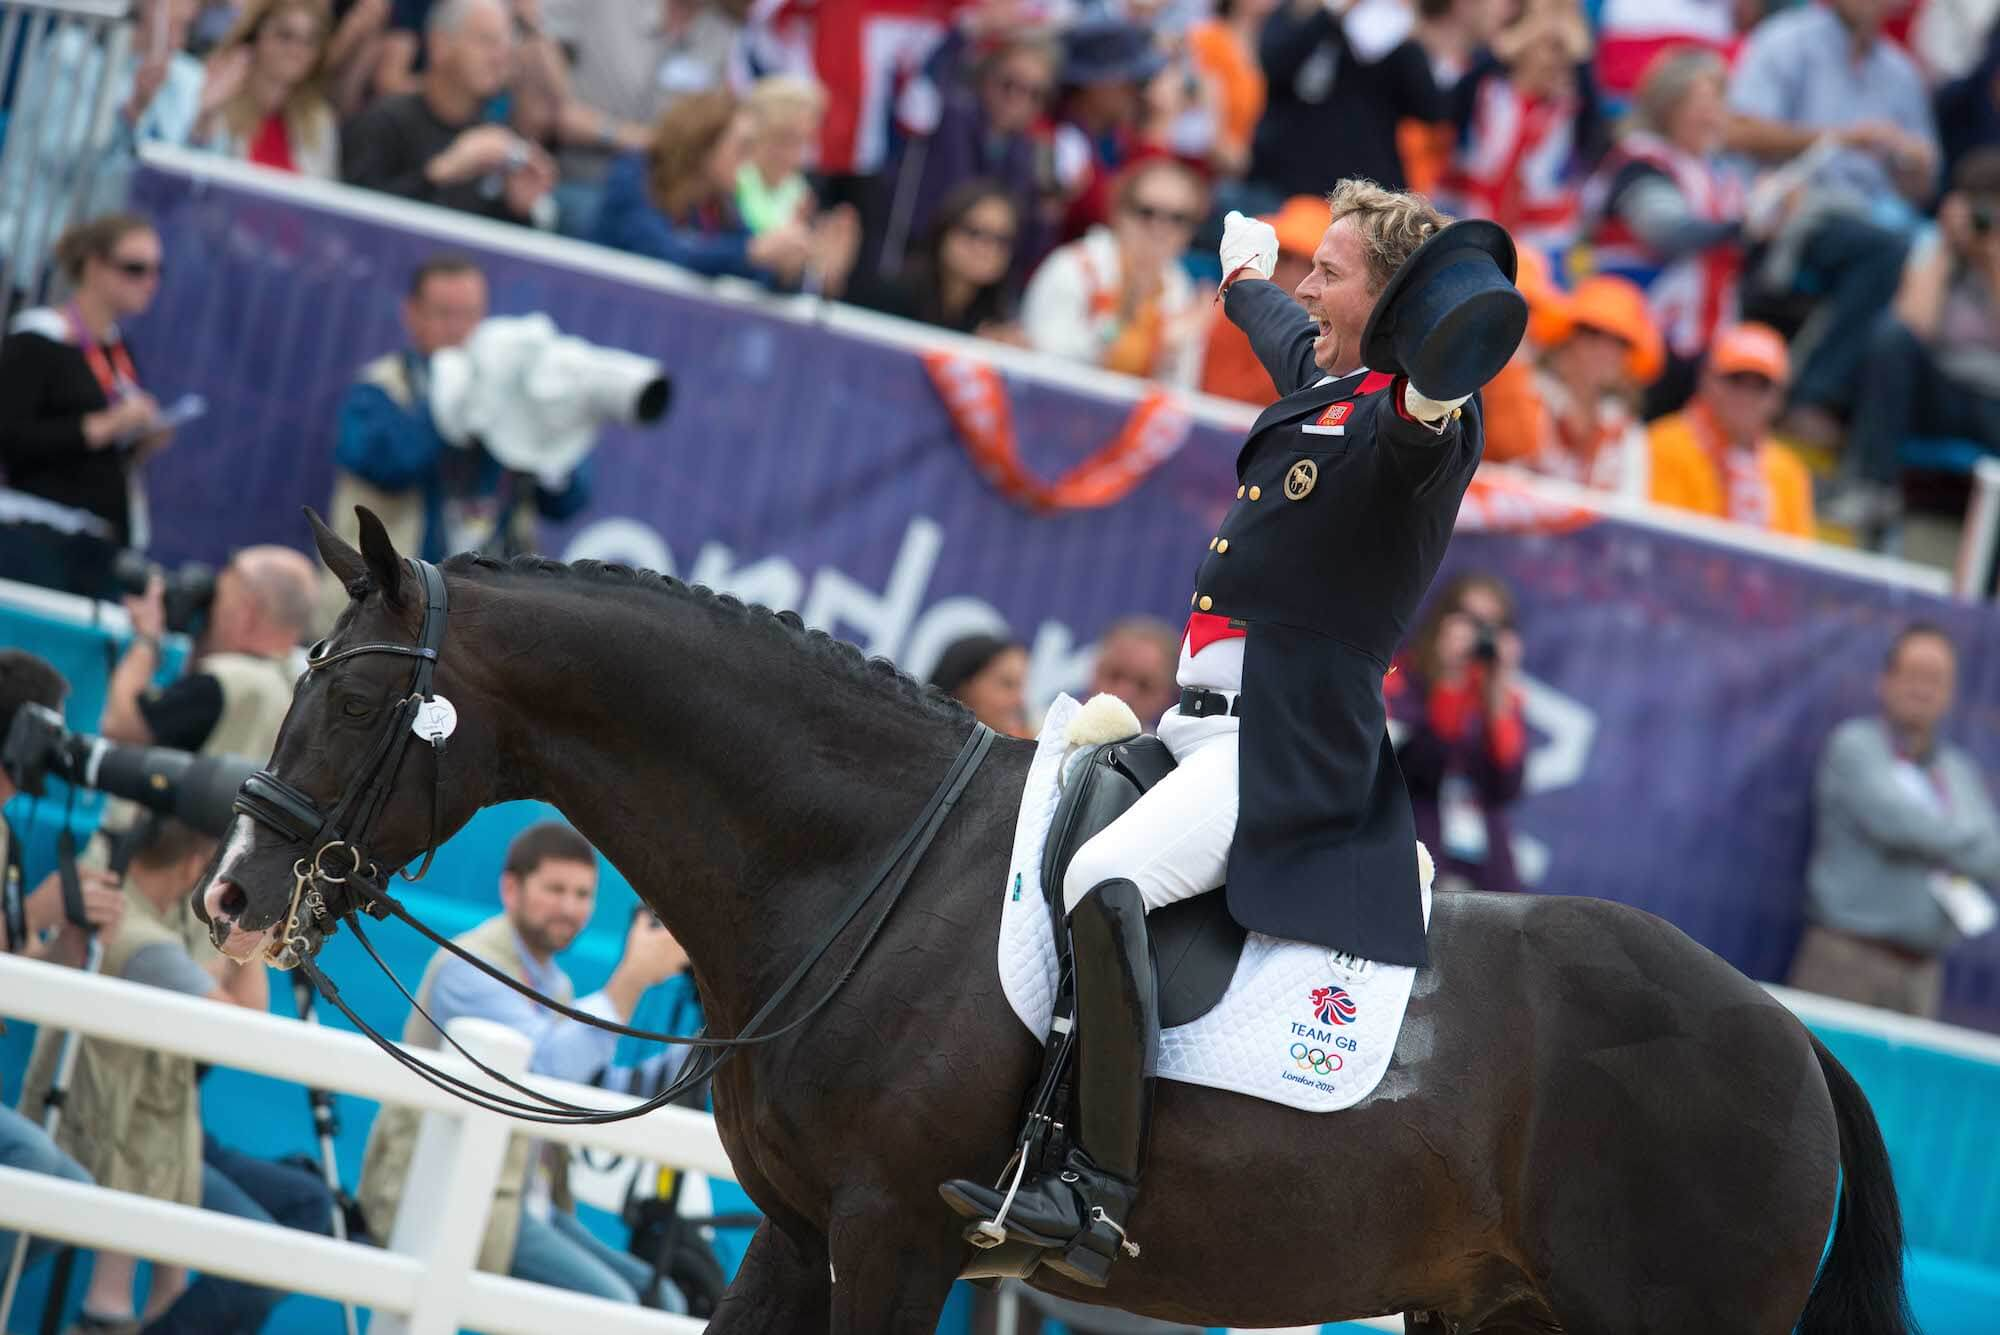 Carl Hester (GBR) & Uthopia - Dressage Grand Prix Special - London 2012 Olympic Games - Greenwich Park, London, United Kingdom - 07 August 2012